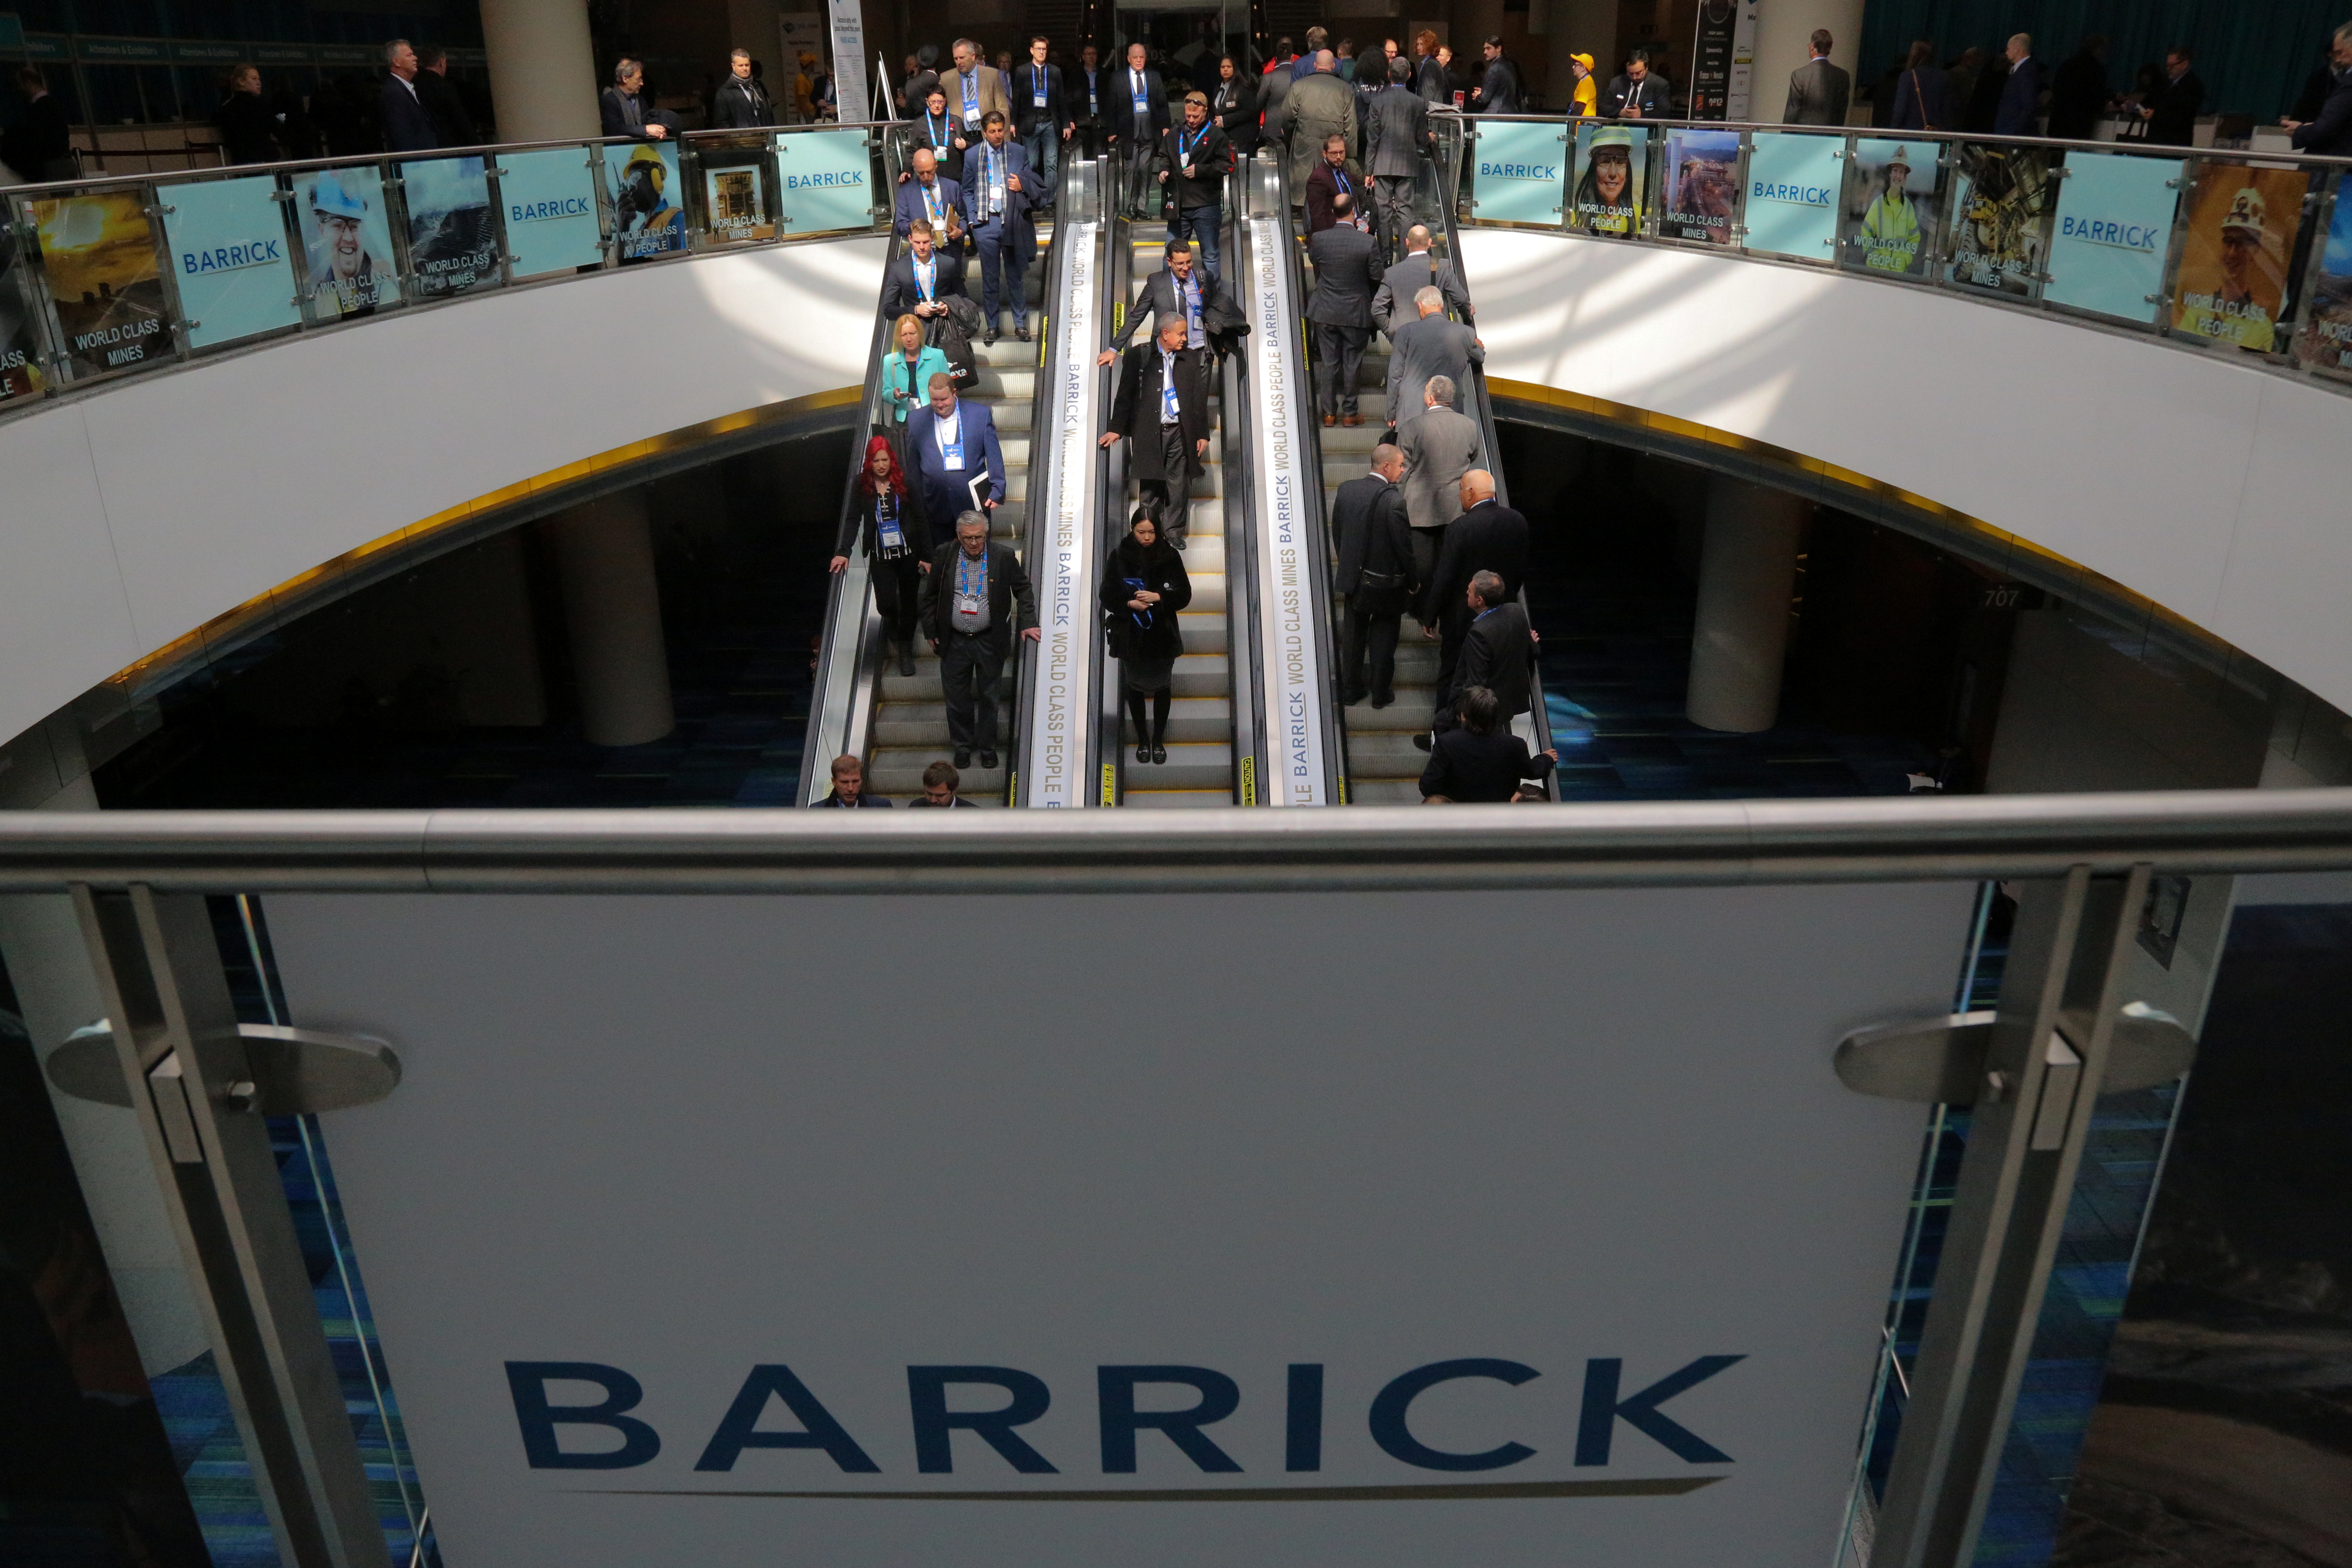 The logo of sponsor Barrick Gold Corporation is seen as visitors arrive at the Prospectors and Developers Association of Canada (PDAC) annual convention in Toronto, Ontario, Canada March 4, 2019. REUTERS/Chris Helgren